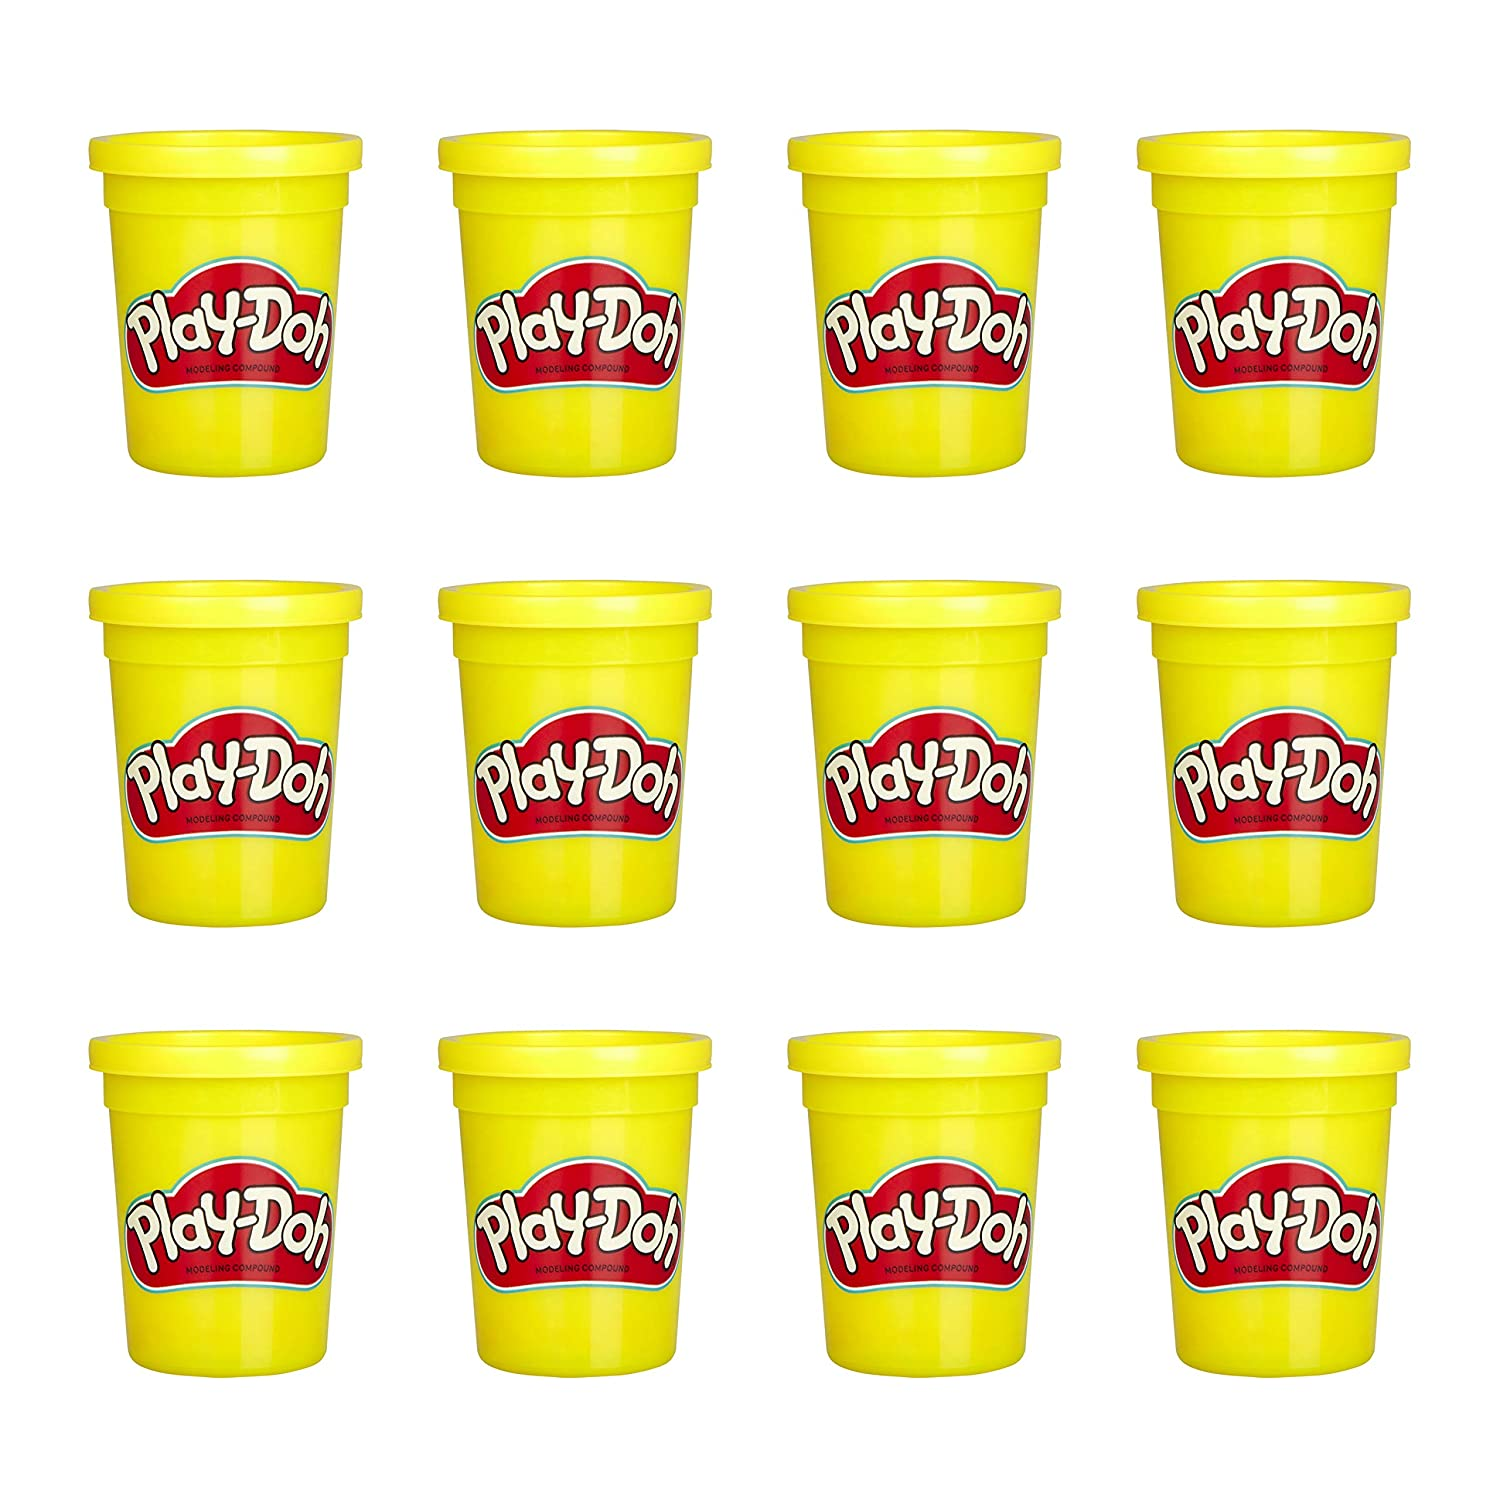 Play-Doh Bulk 12-Pack of Yellow Non-Toxic Modeling Compound 4-Ounce Cans Hasbro E4829AF1